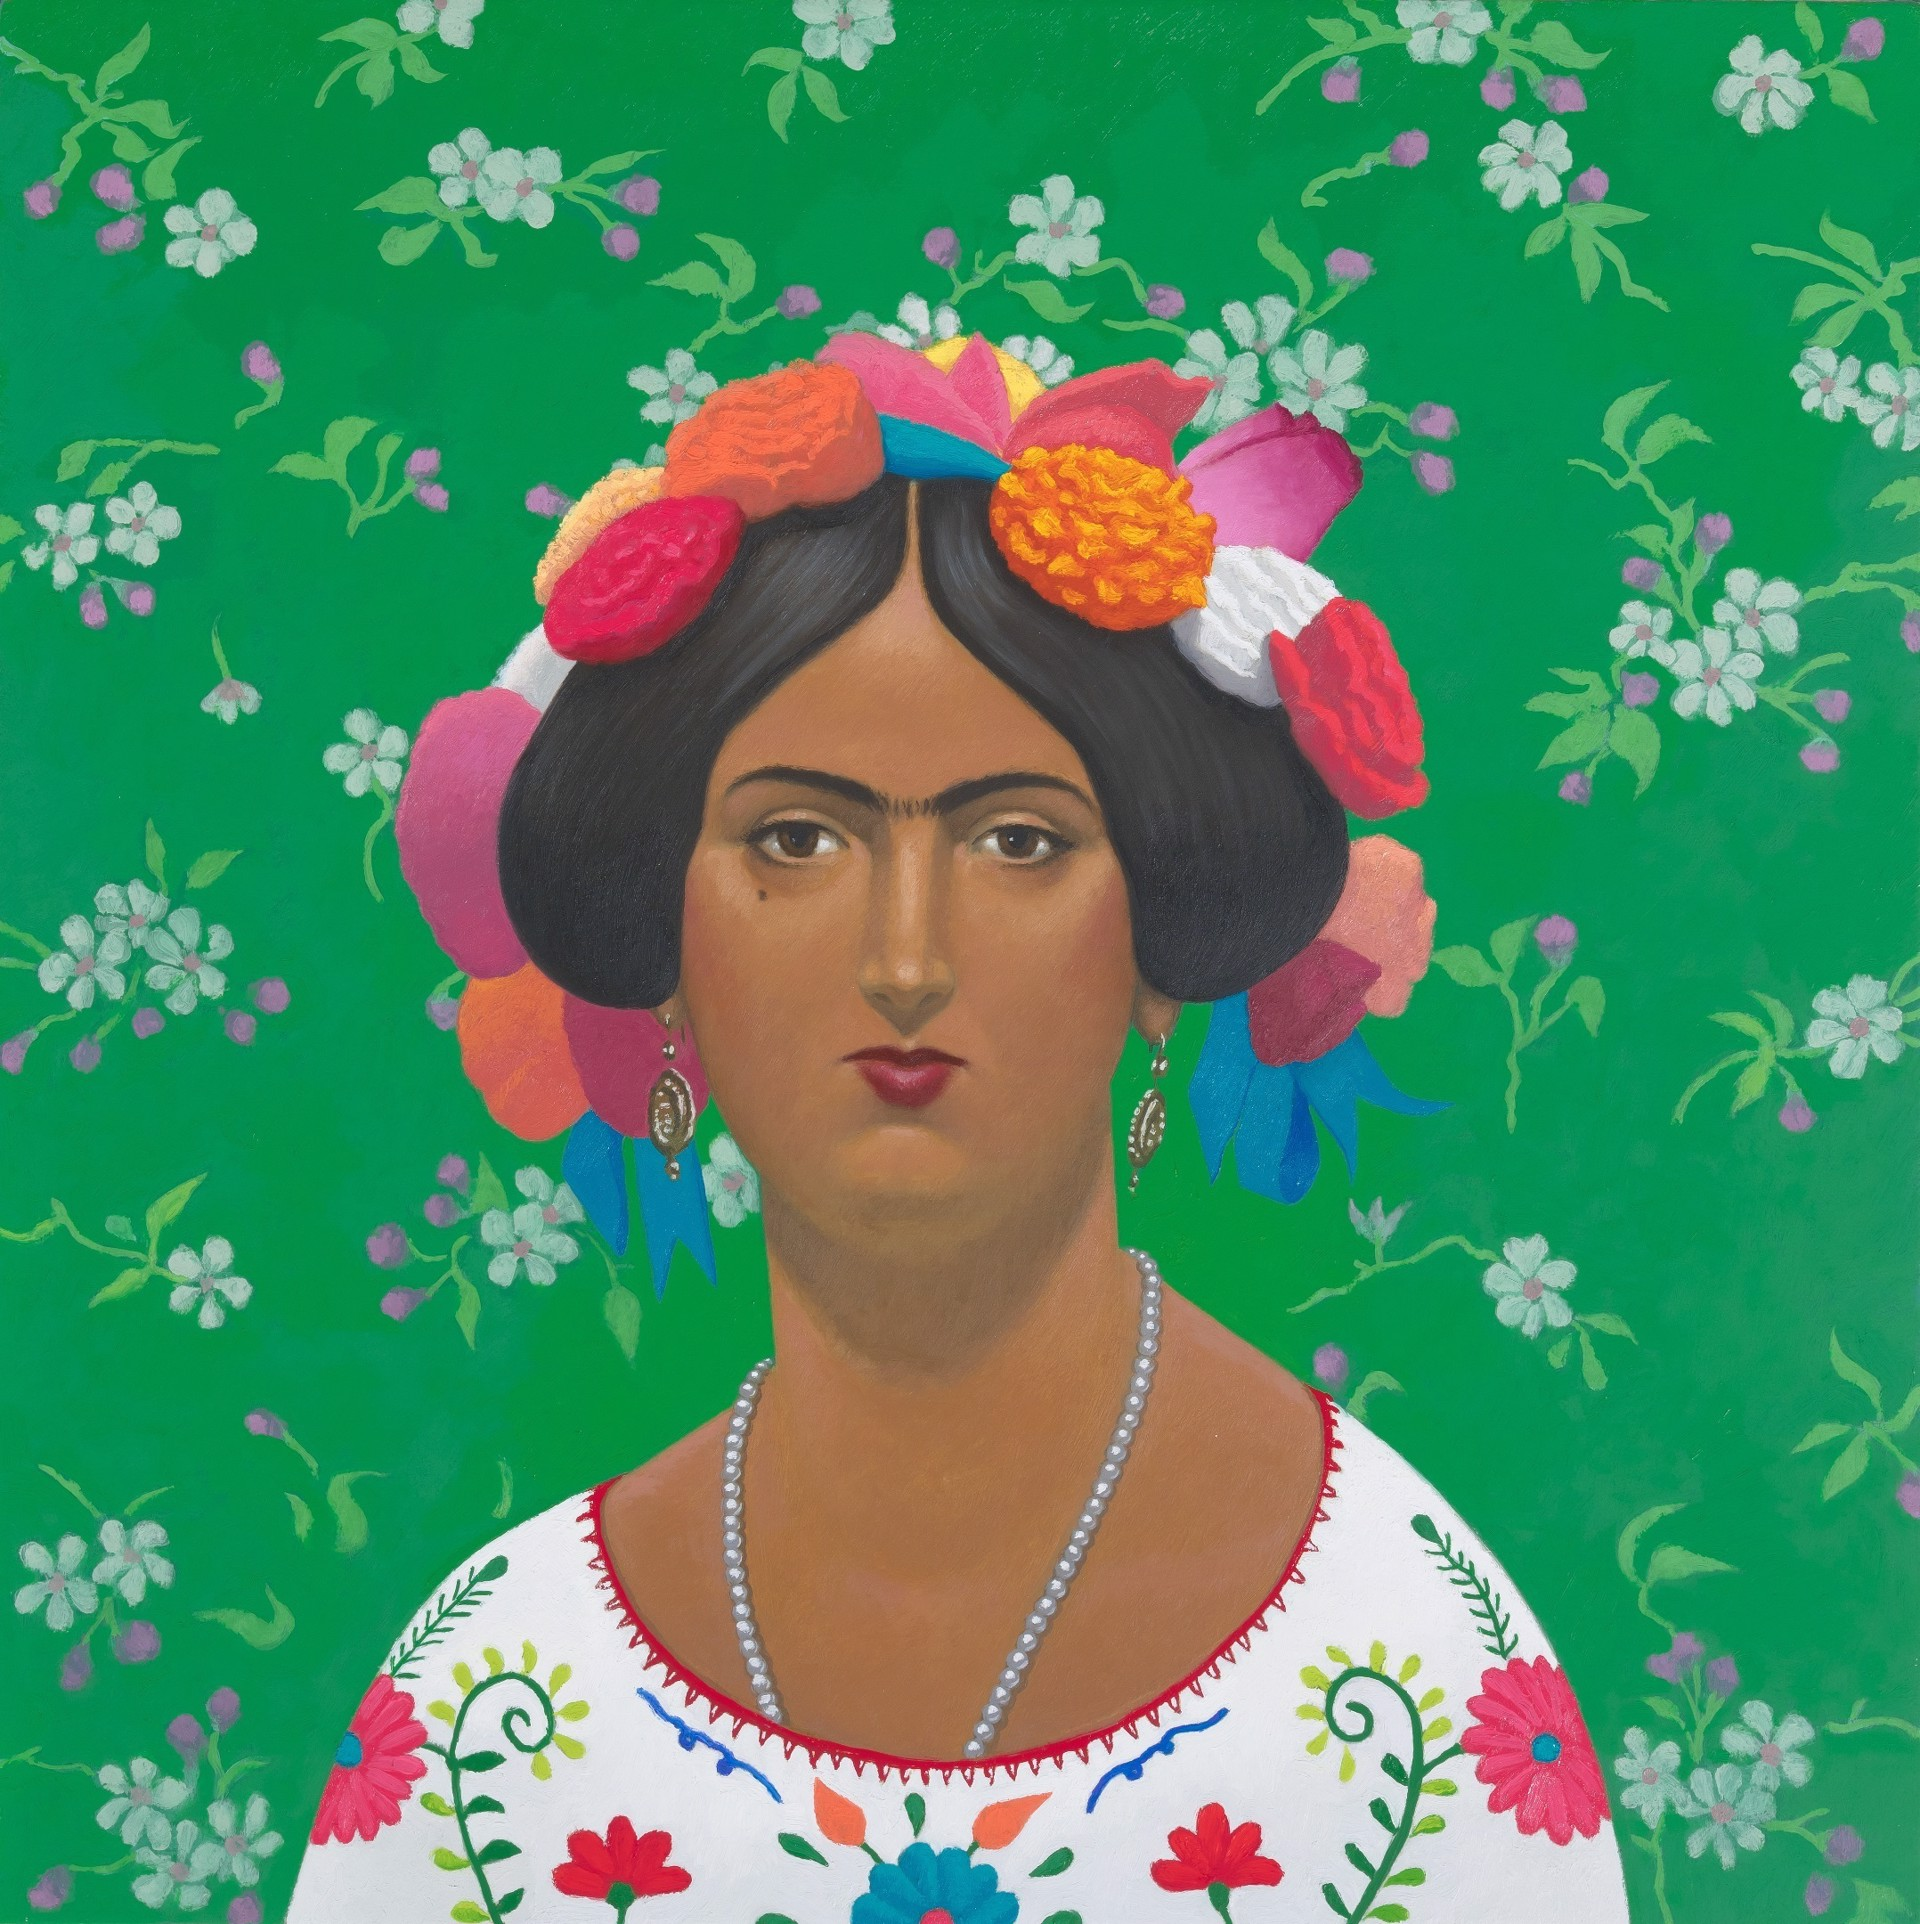 El Ingres-Frida (Appropriation of Culture) by Vonn Cummings Sumner